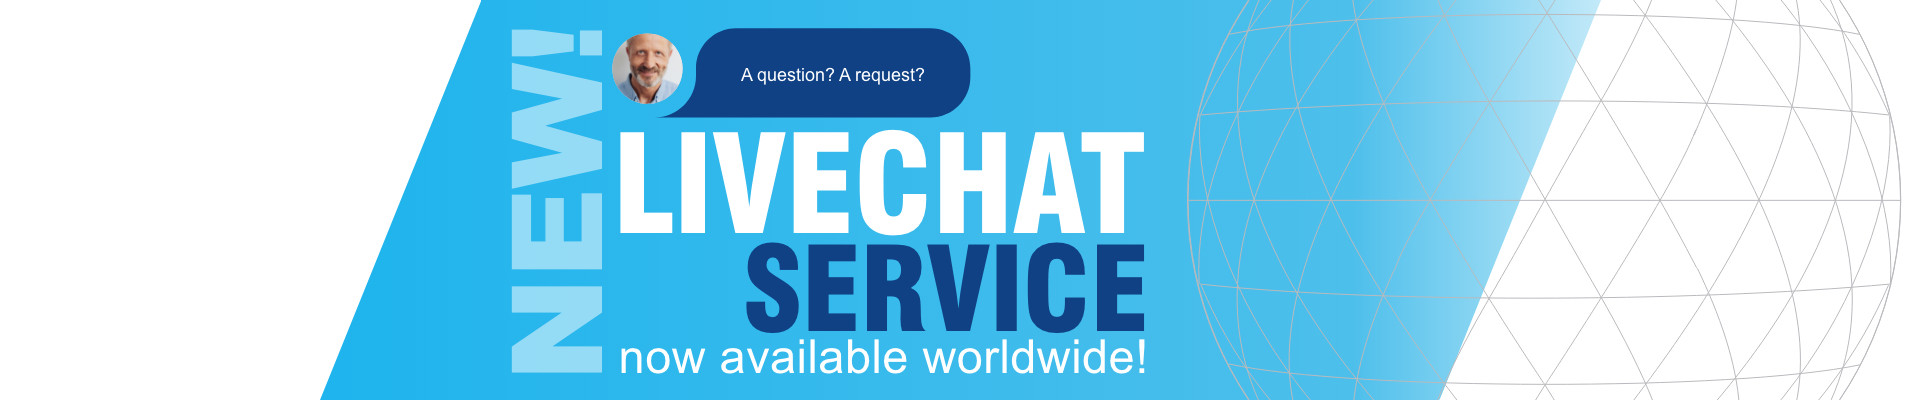 Livechat available Worldwide